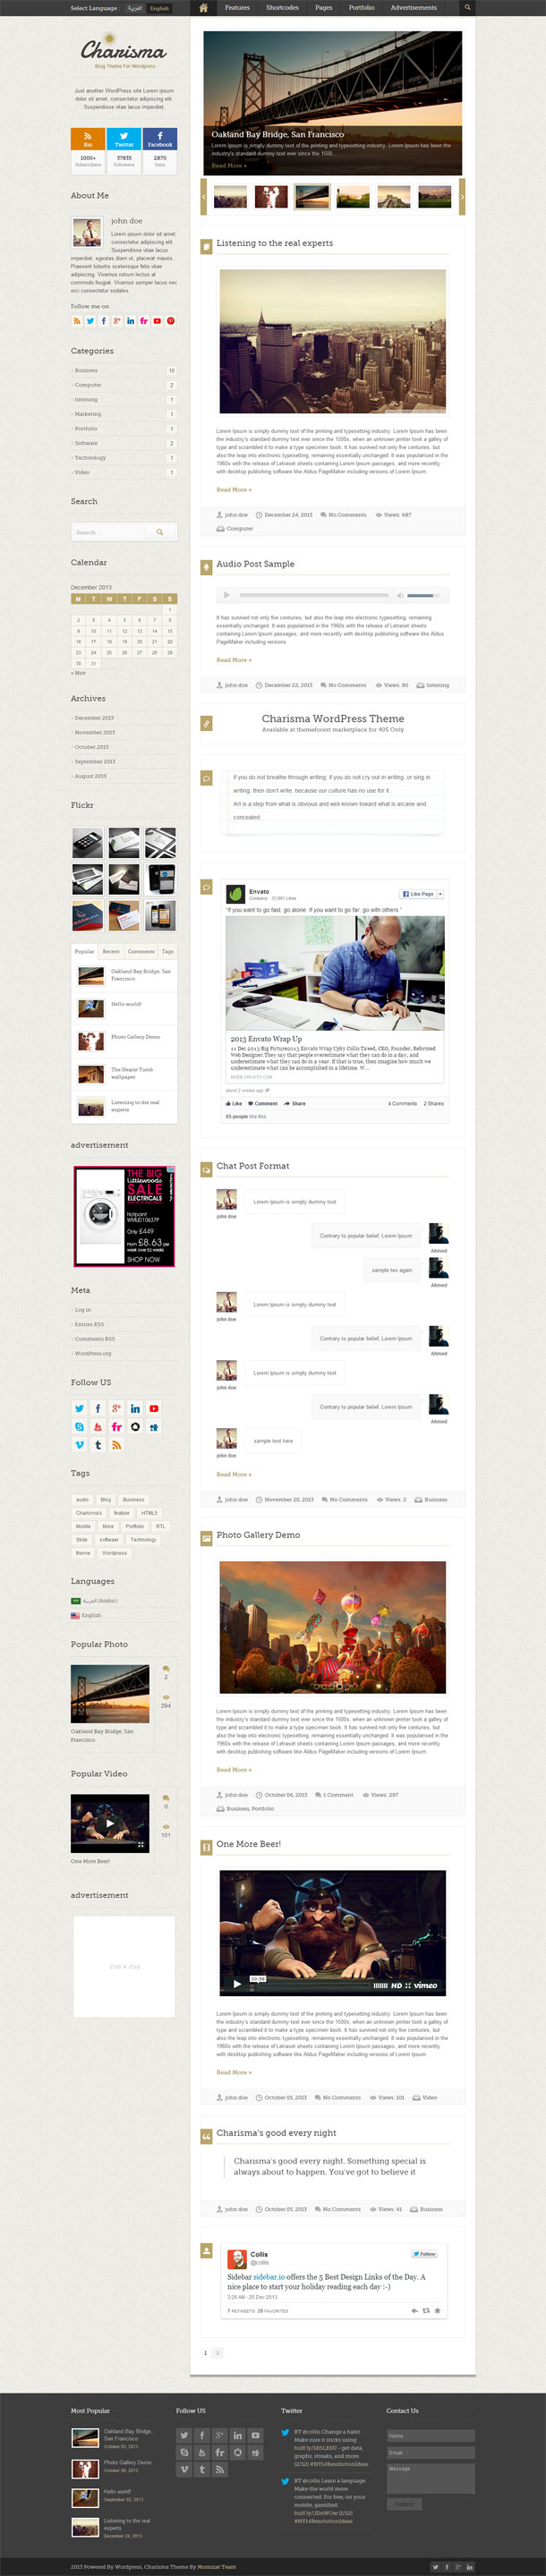 Charisma Great WordPress Theme for 2014 image